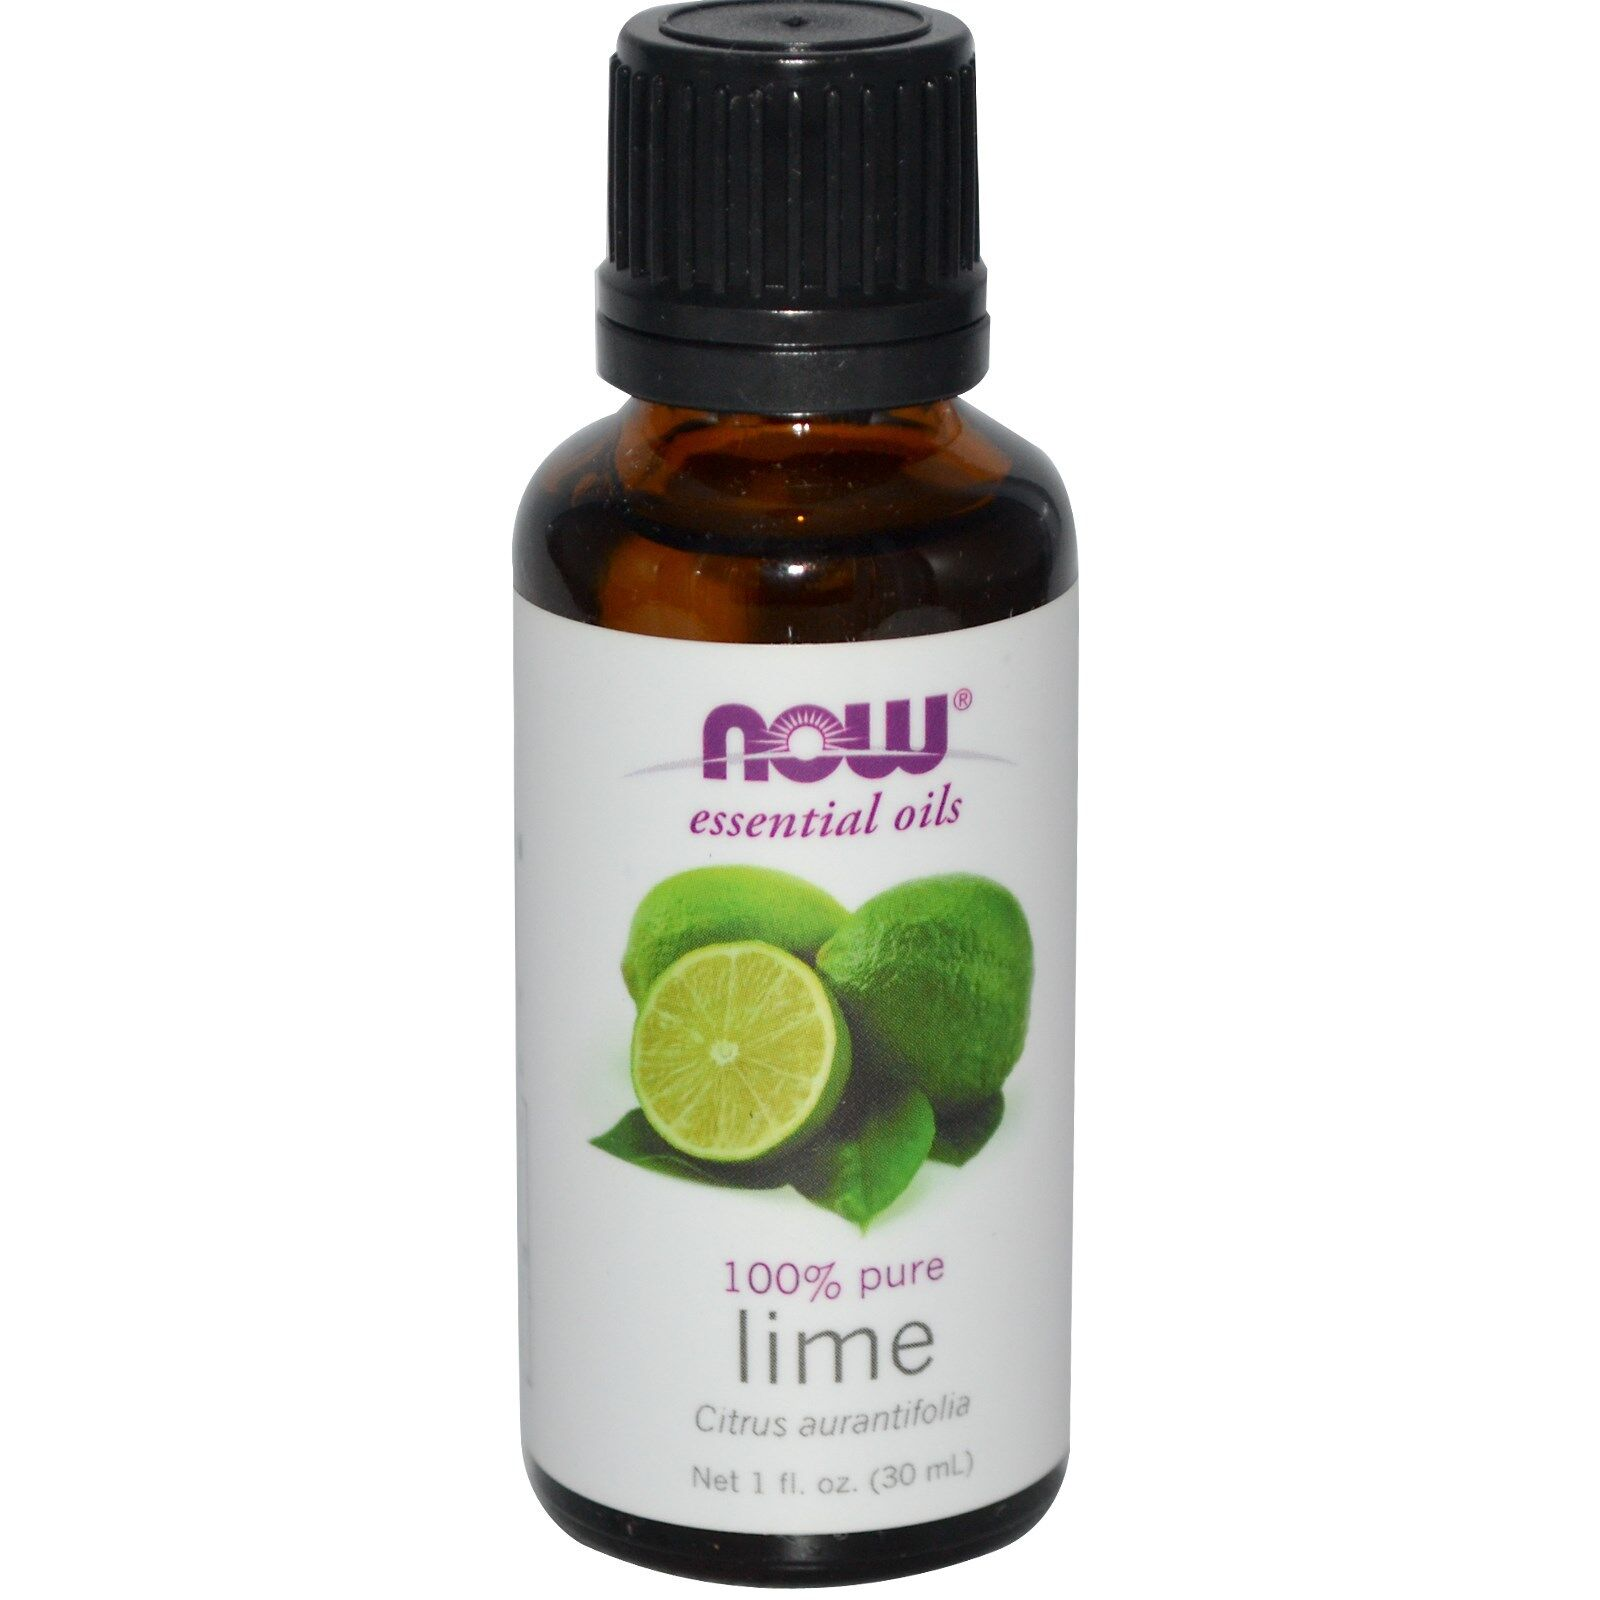 NOW Foods 1 oz Essential Oils and Blend Oils - FREE SHIPPING! Lime